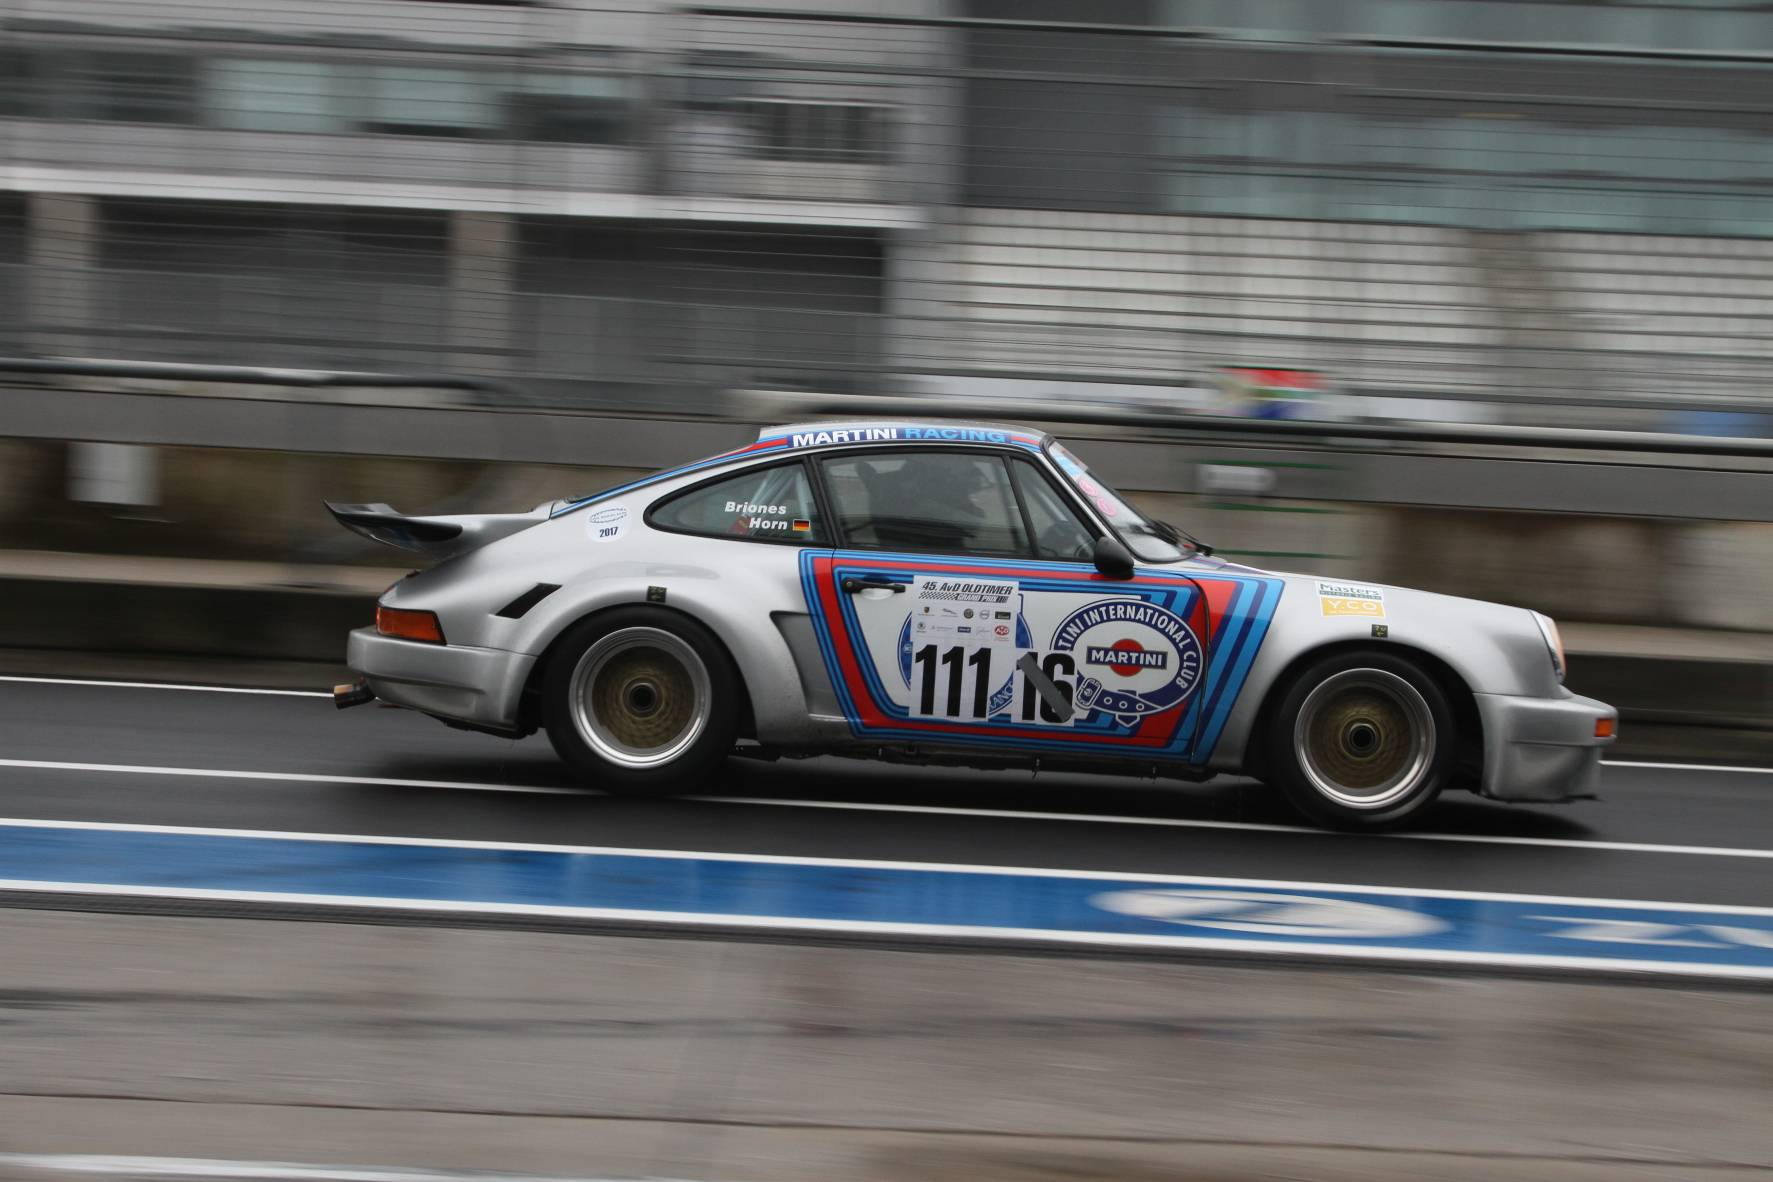 Porsche 911 RSR Pablo Briones @ FIA Historic Sports Car AvD Oltimer GP 2017